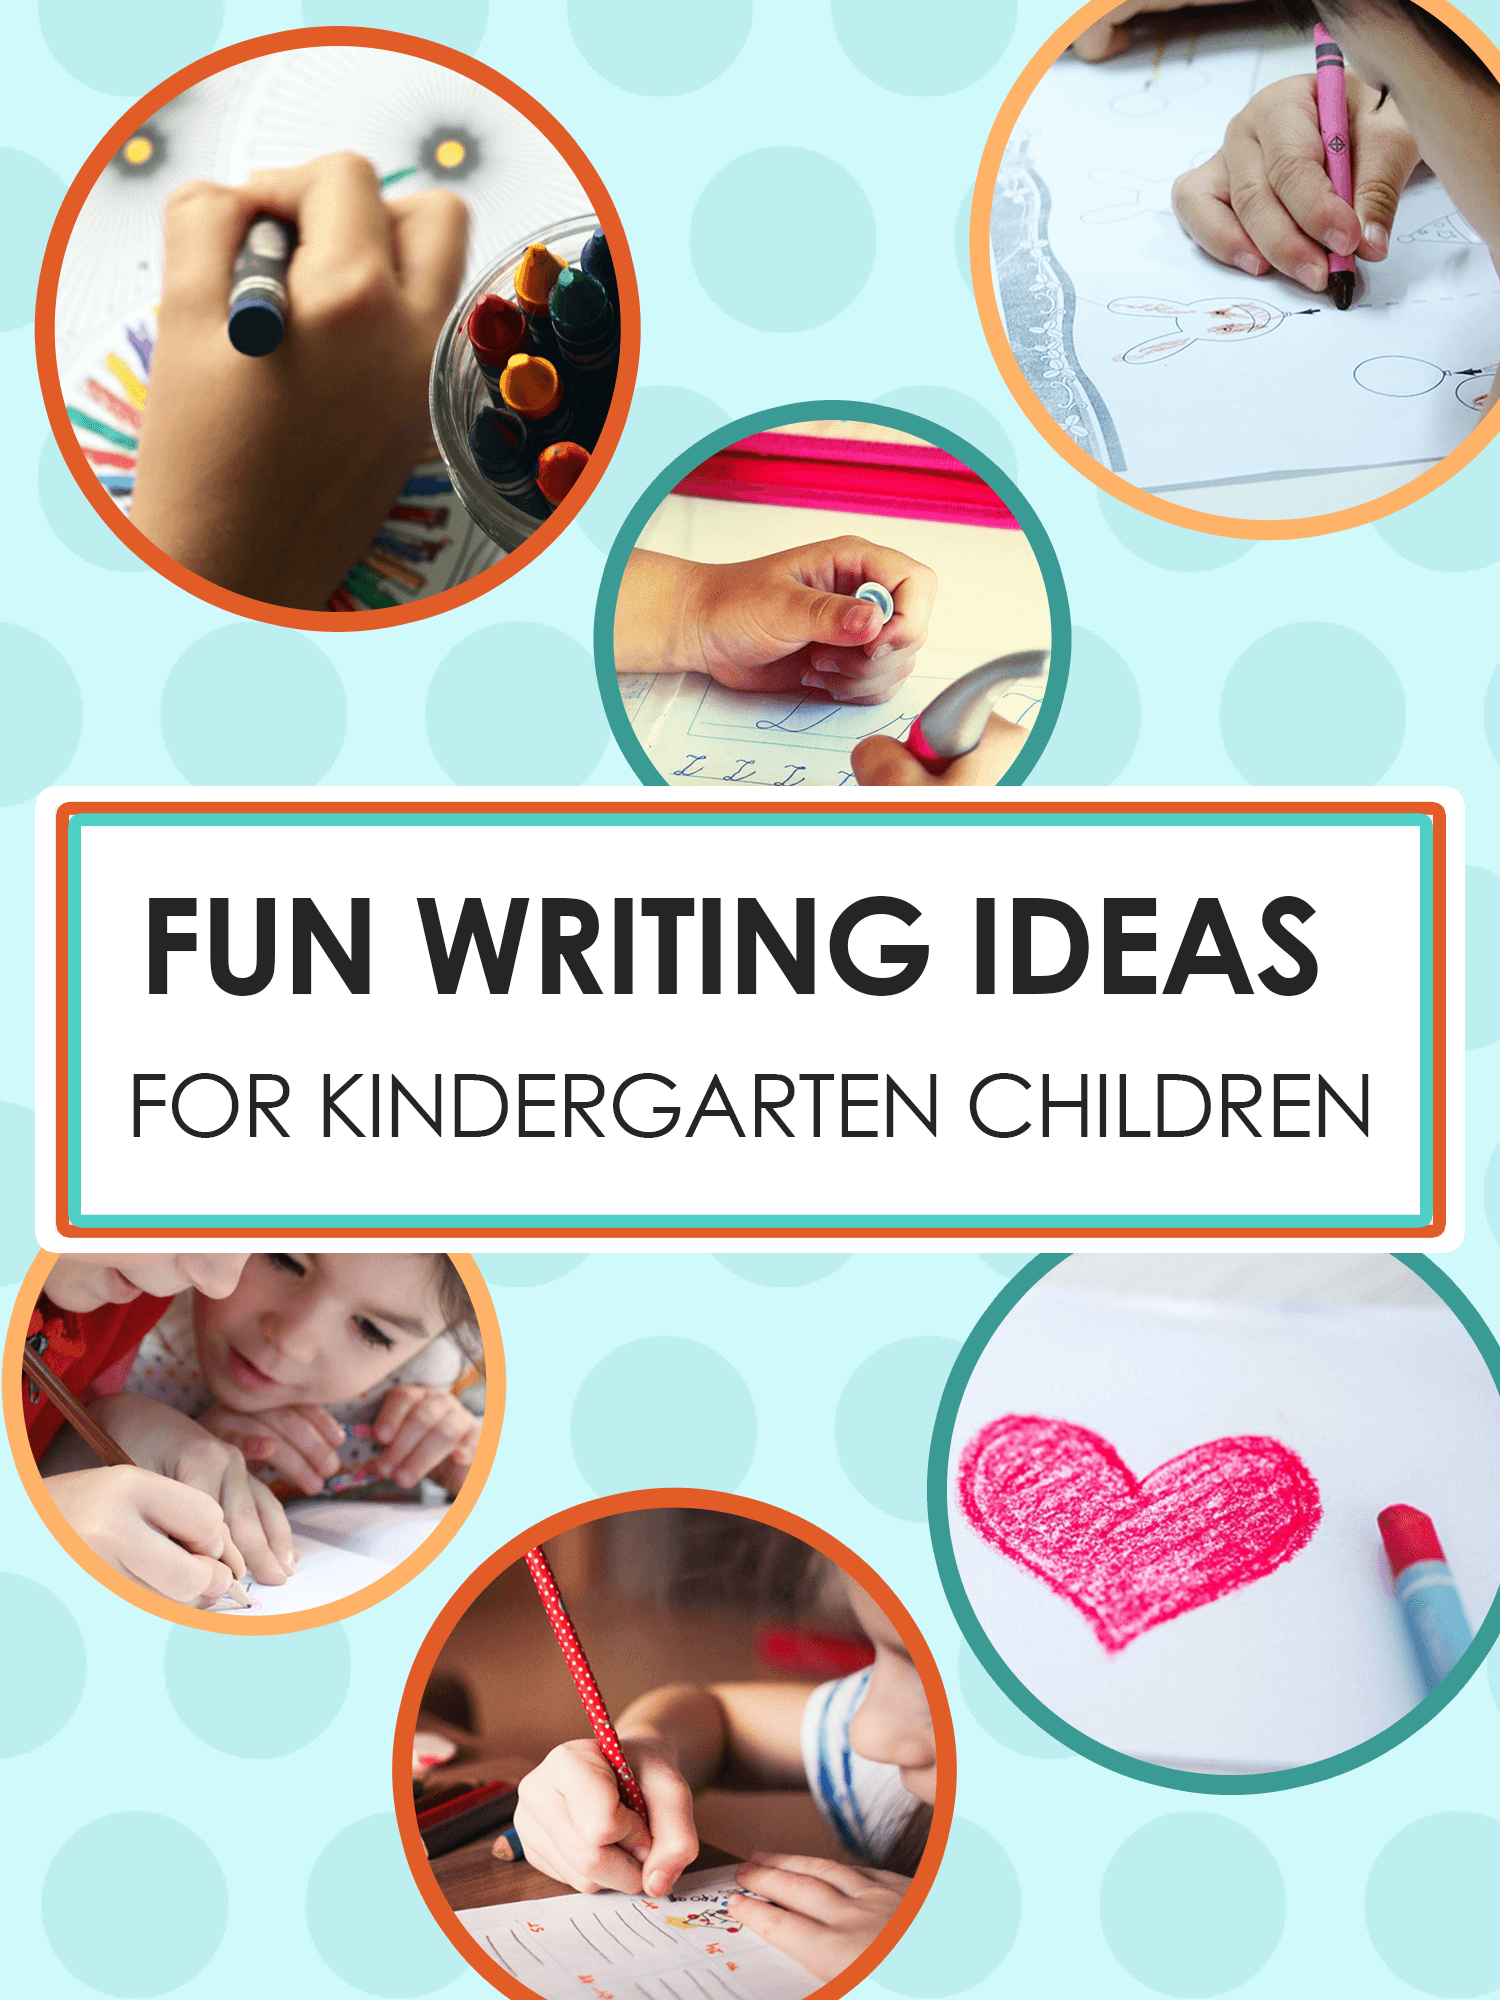 Fun Writing Ideas for Kindergarten Children | Imagine Forest